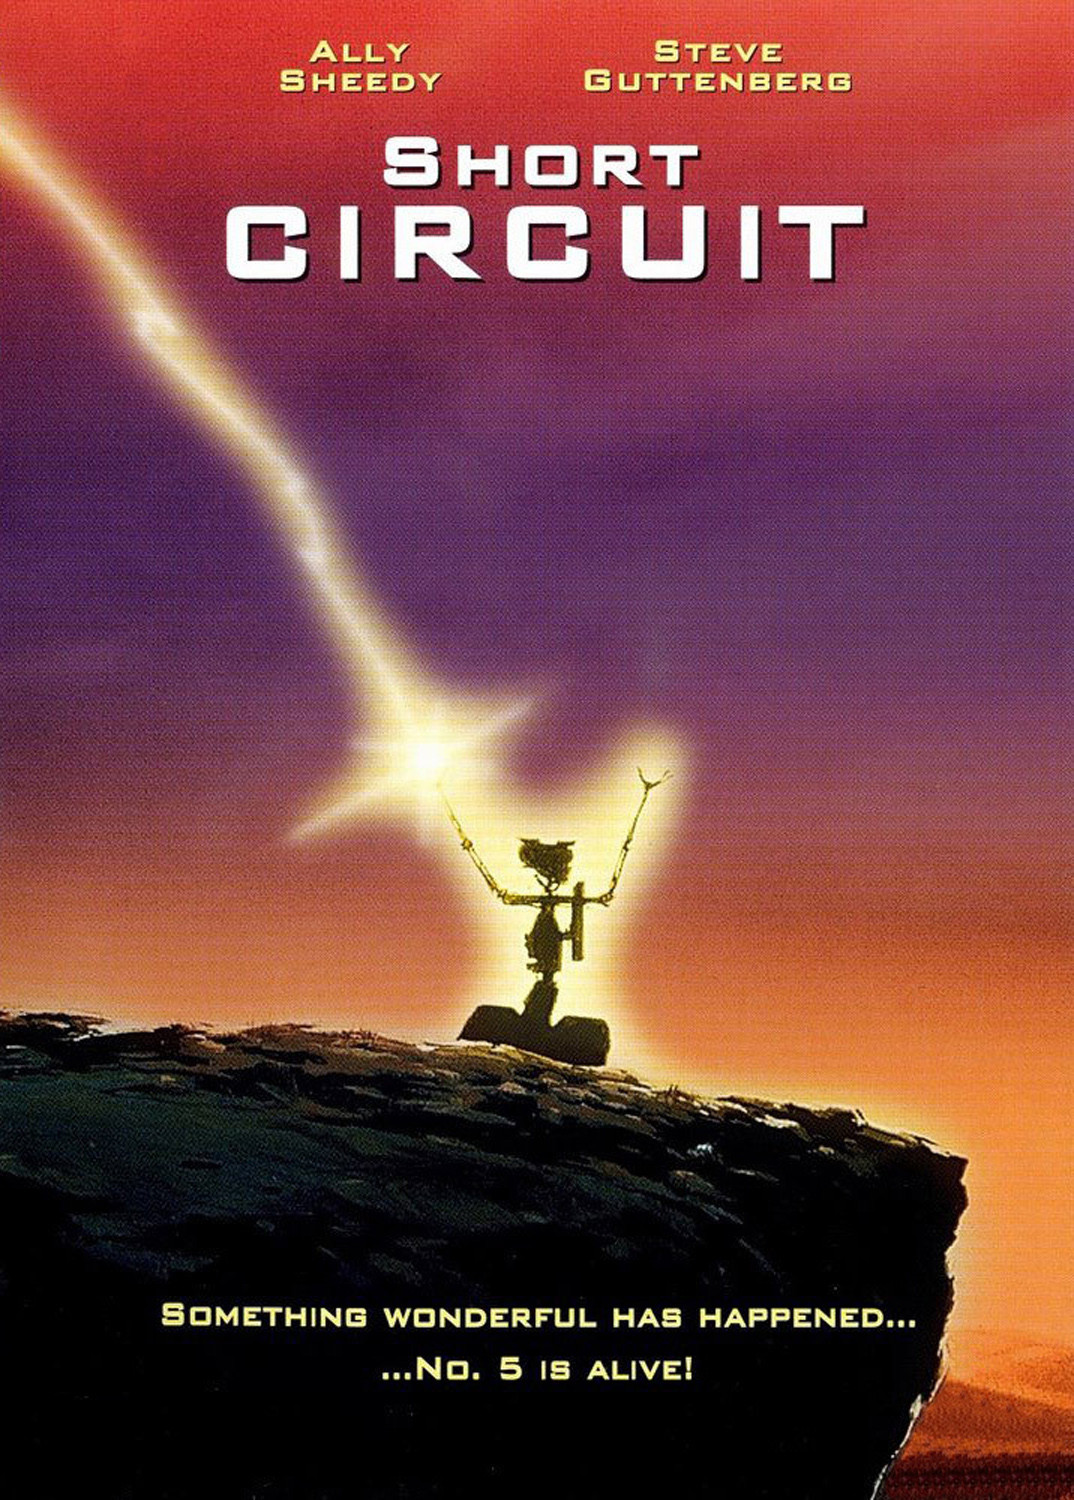 image short circuit  1986  jpg headhunter s holosuite The Mission 1986 Film Short Circuit IMDb